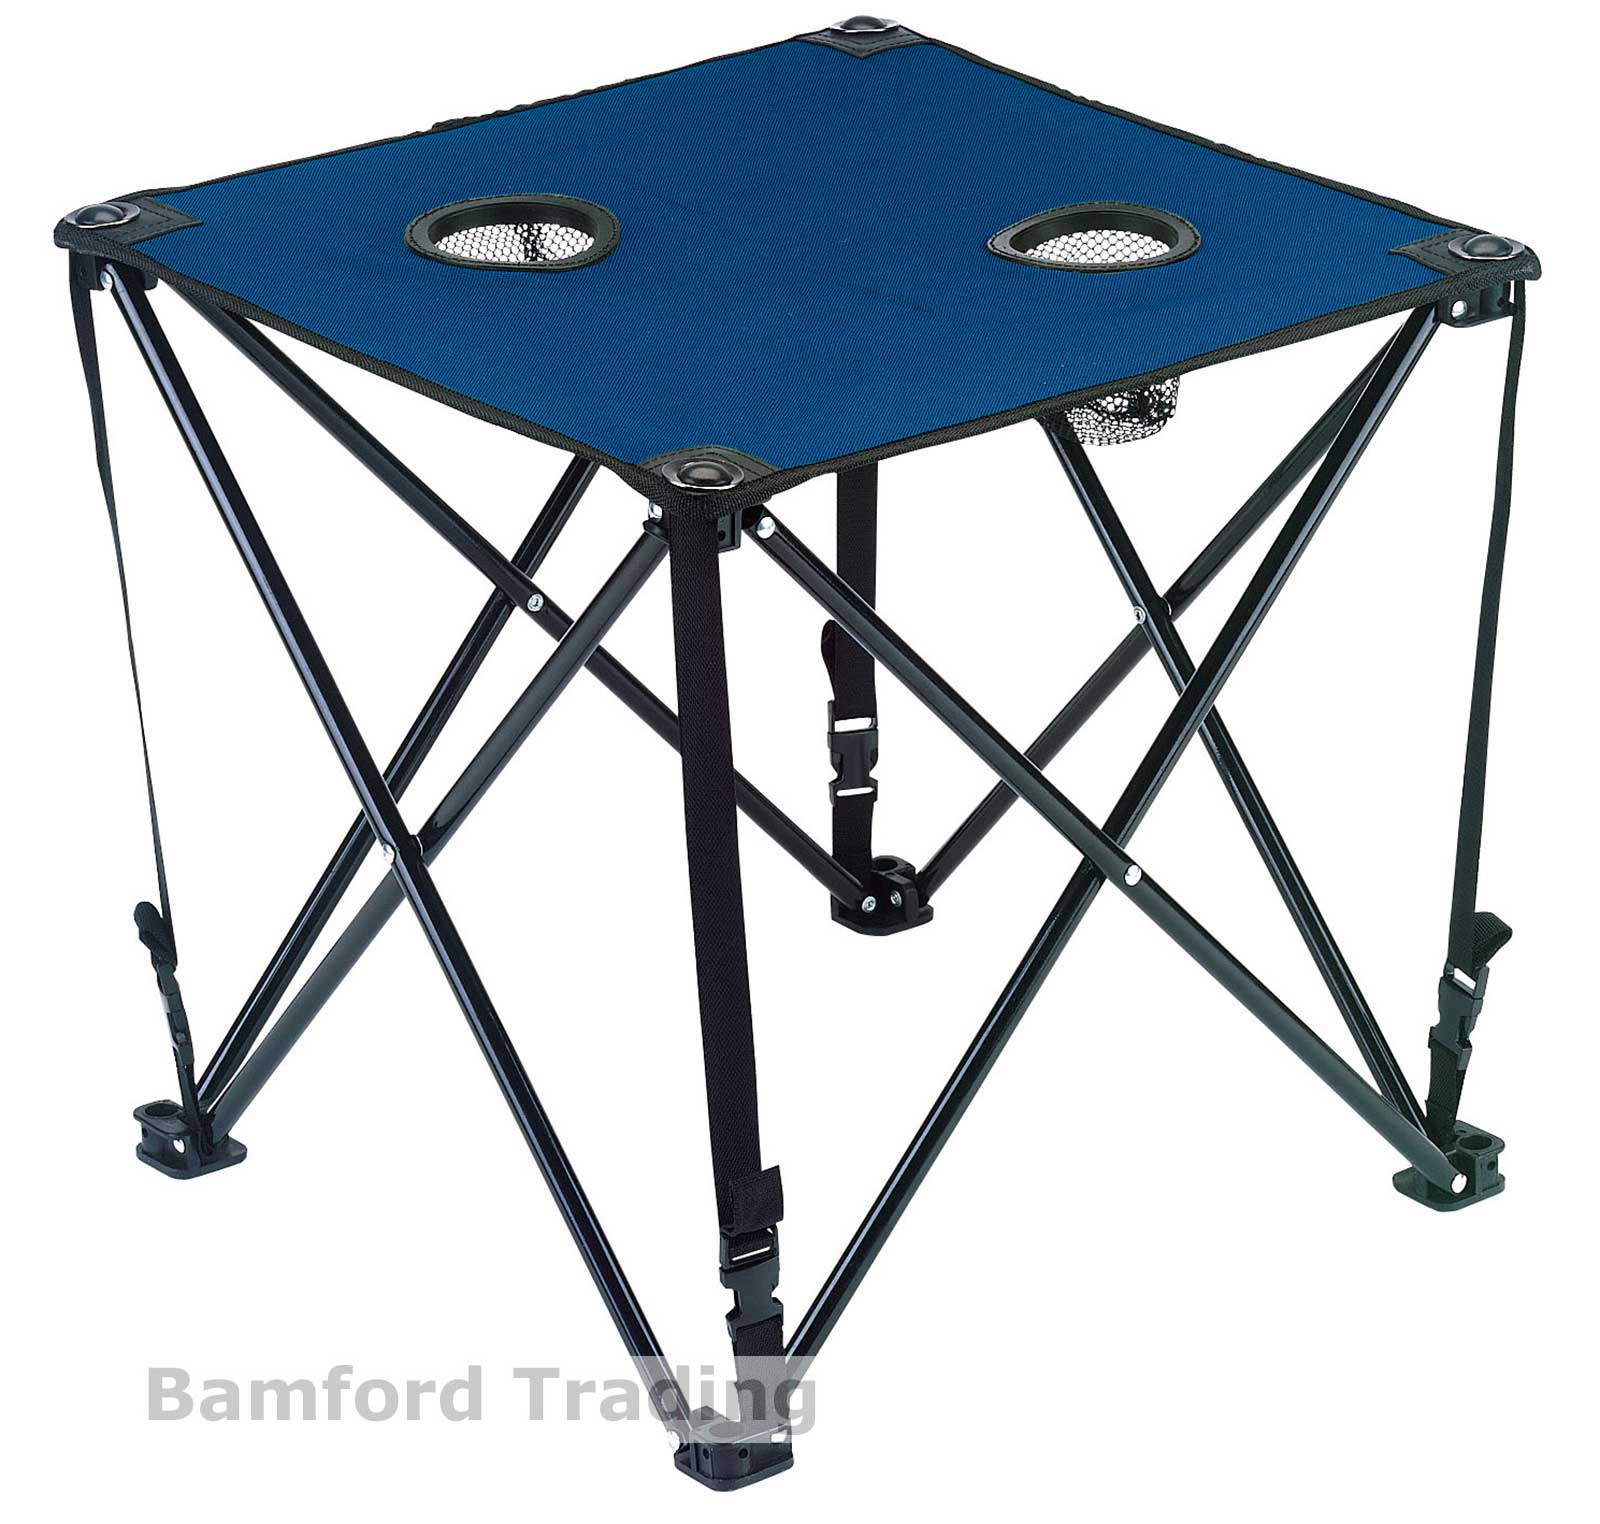 Lifetime Folding Camping Table picture on Lifetime Folding Camping Table110632526512 with Lifetime Folding Camping Table, Folding Table e94a0c4b486203235e48990cd313a915